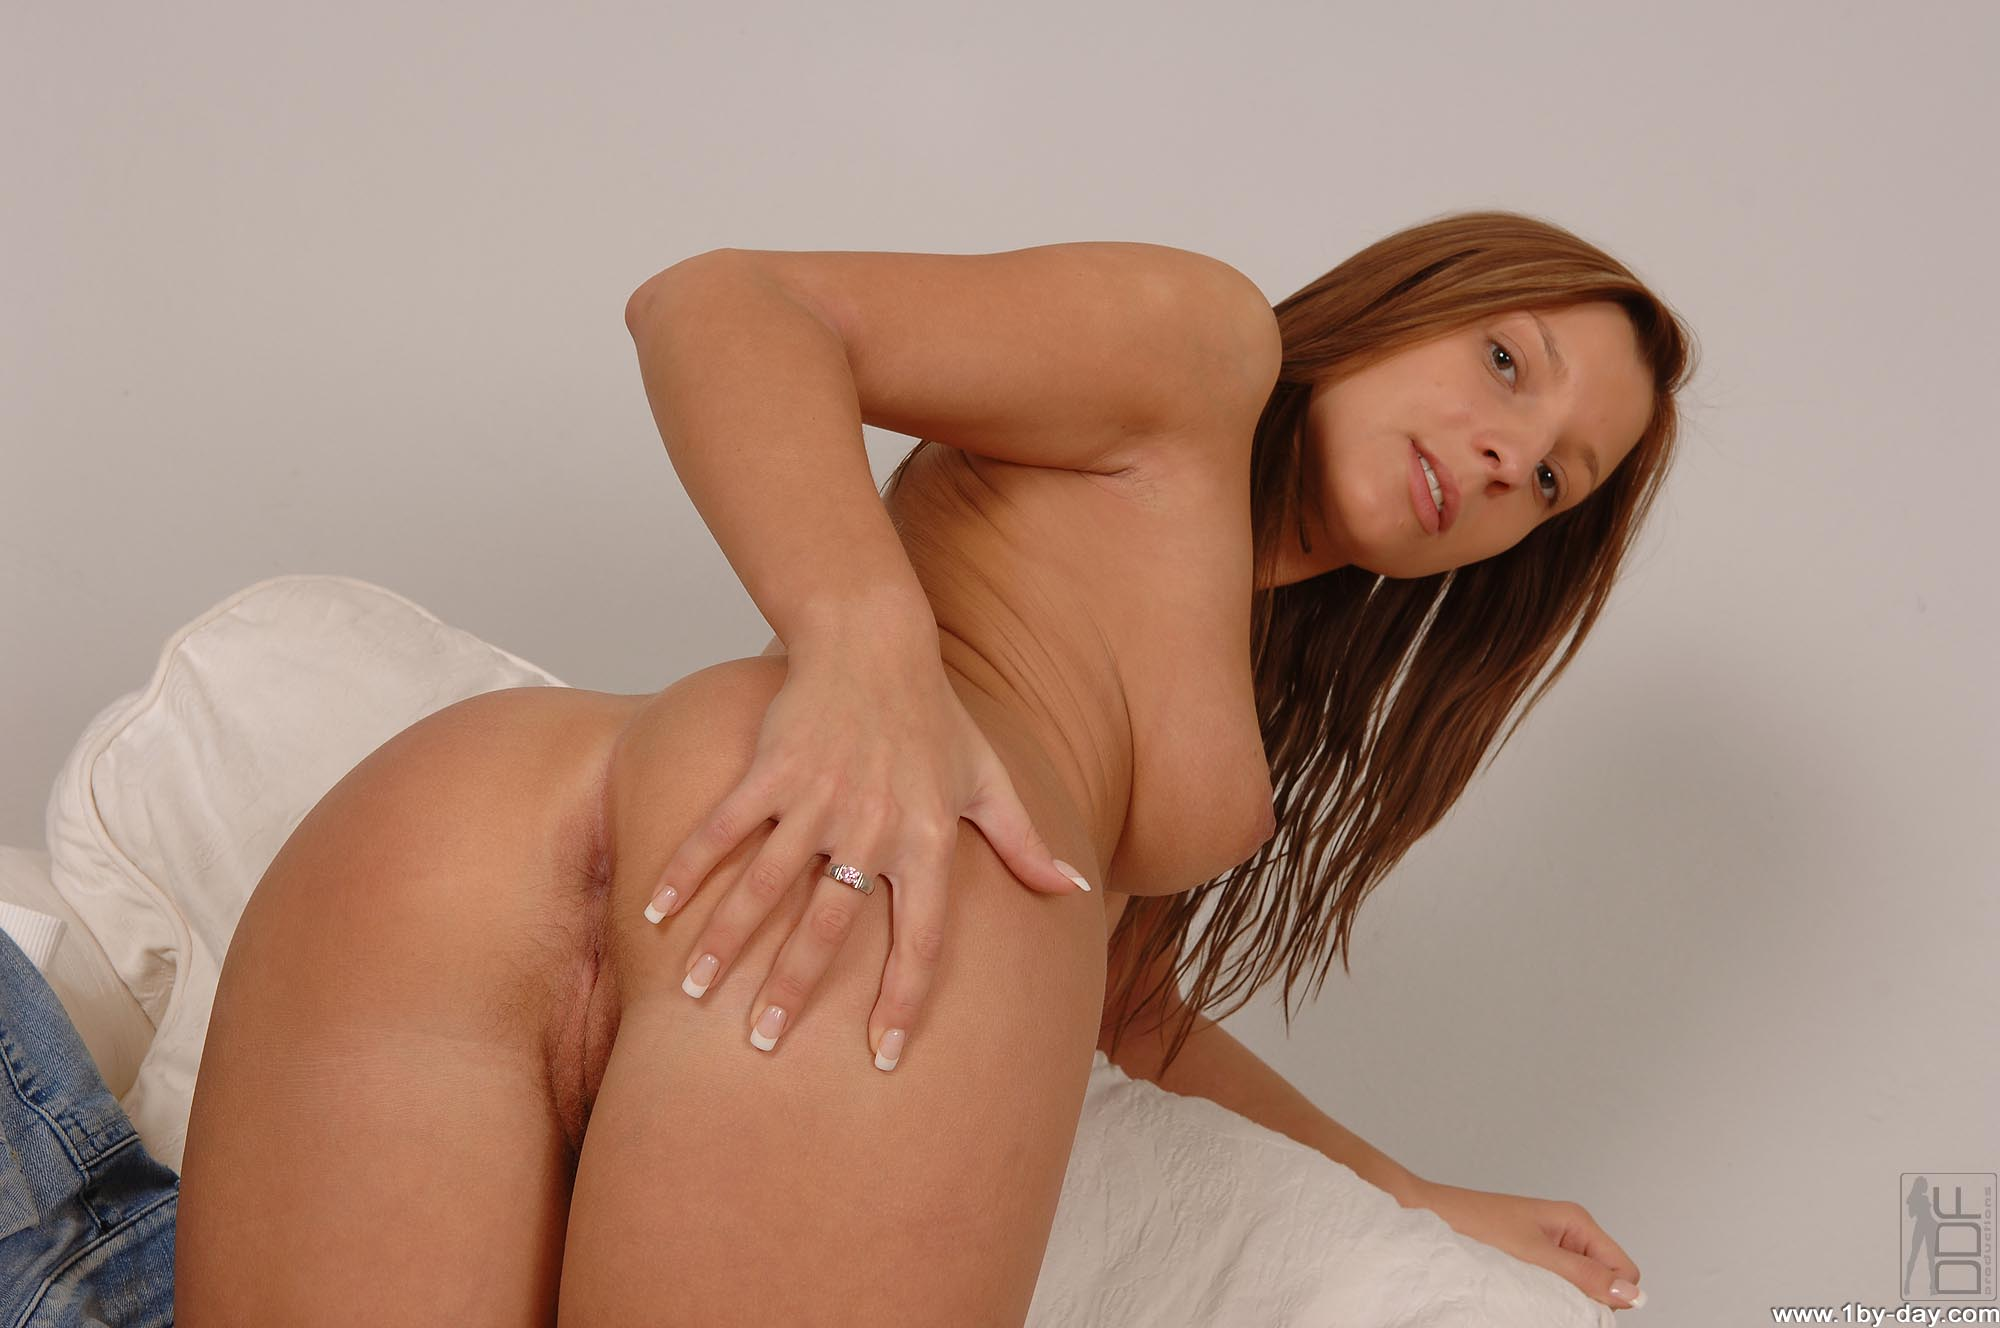 thick thighs naked woman